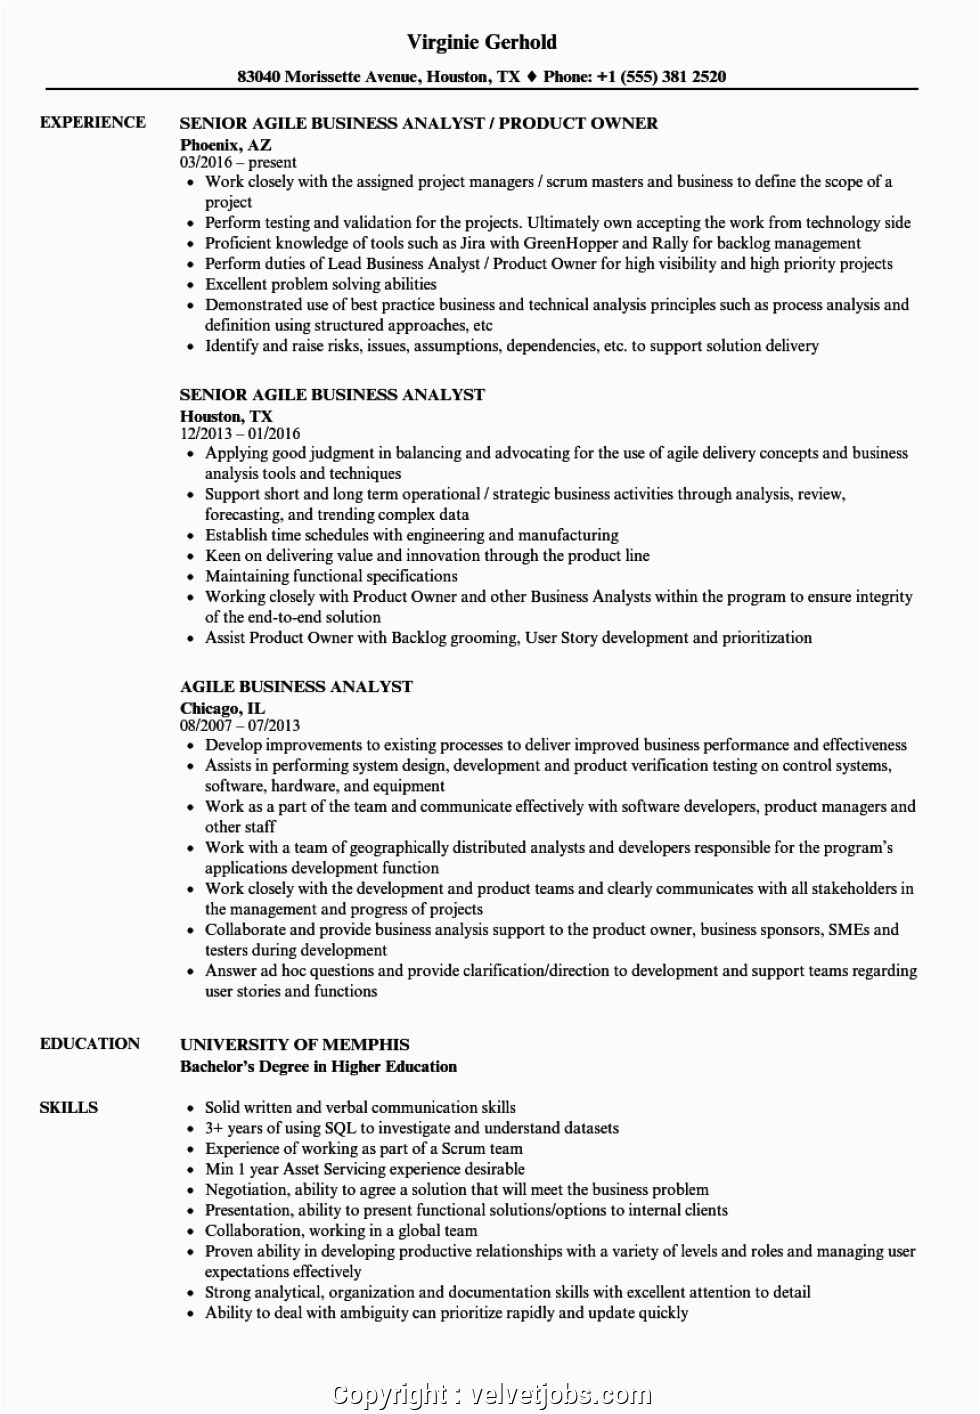 Sample Resume with Agile Experience for Testing Make Sample Resume with Agile Experience Agile Business